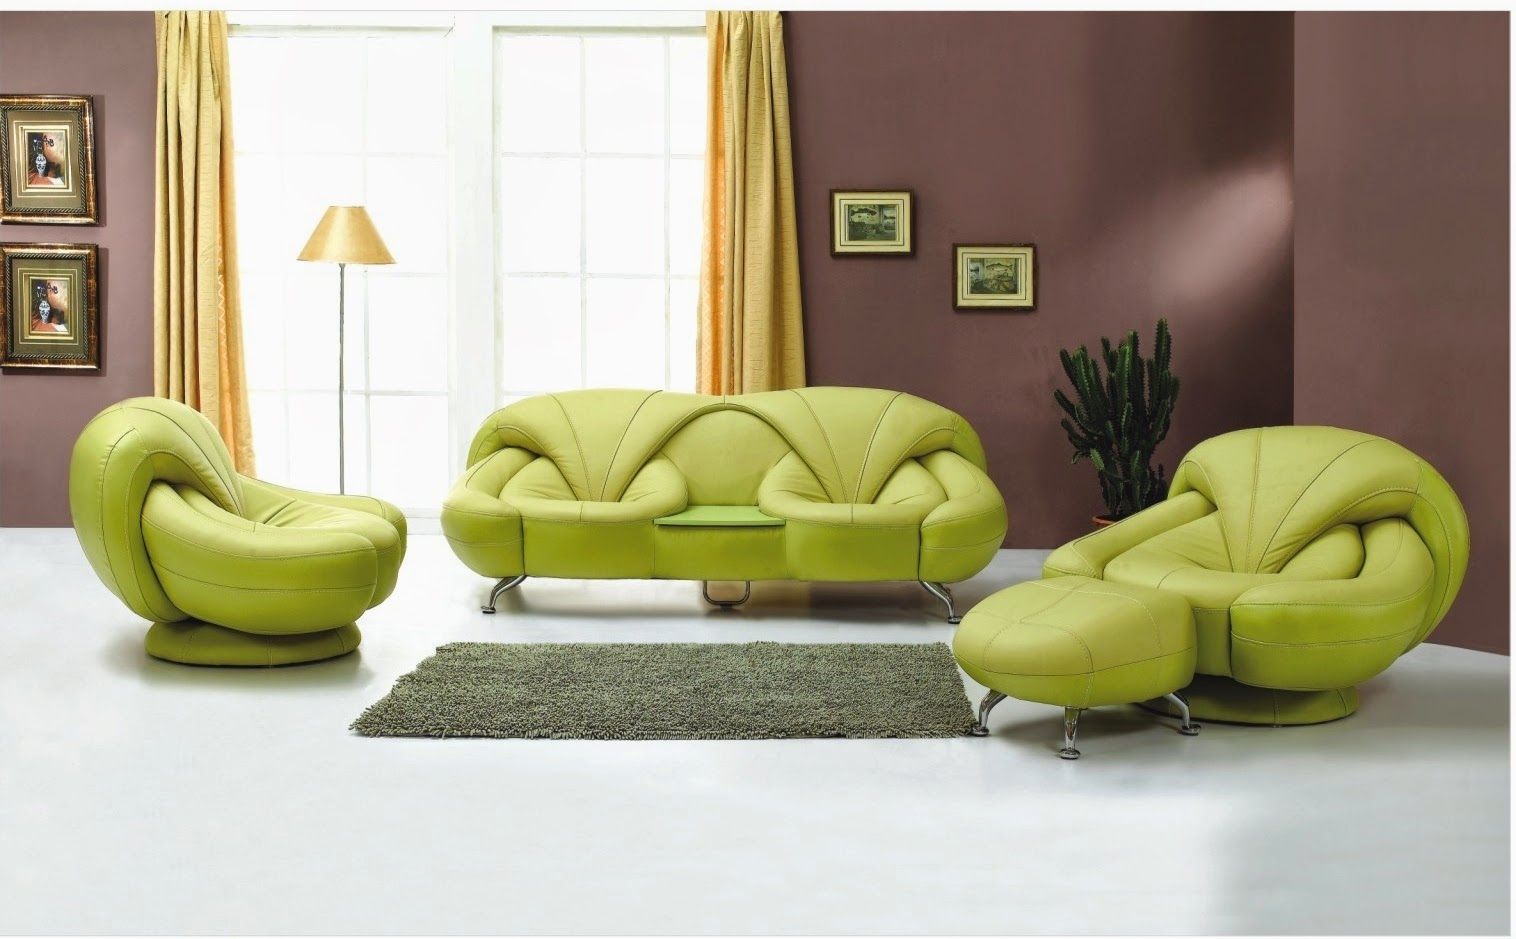 Modern green living room furniture set